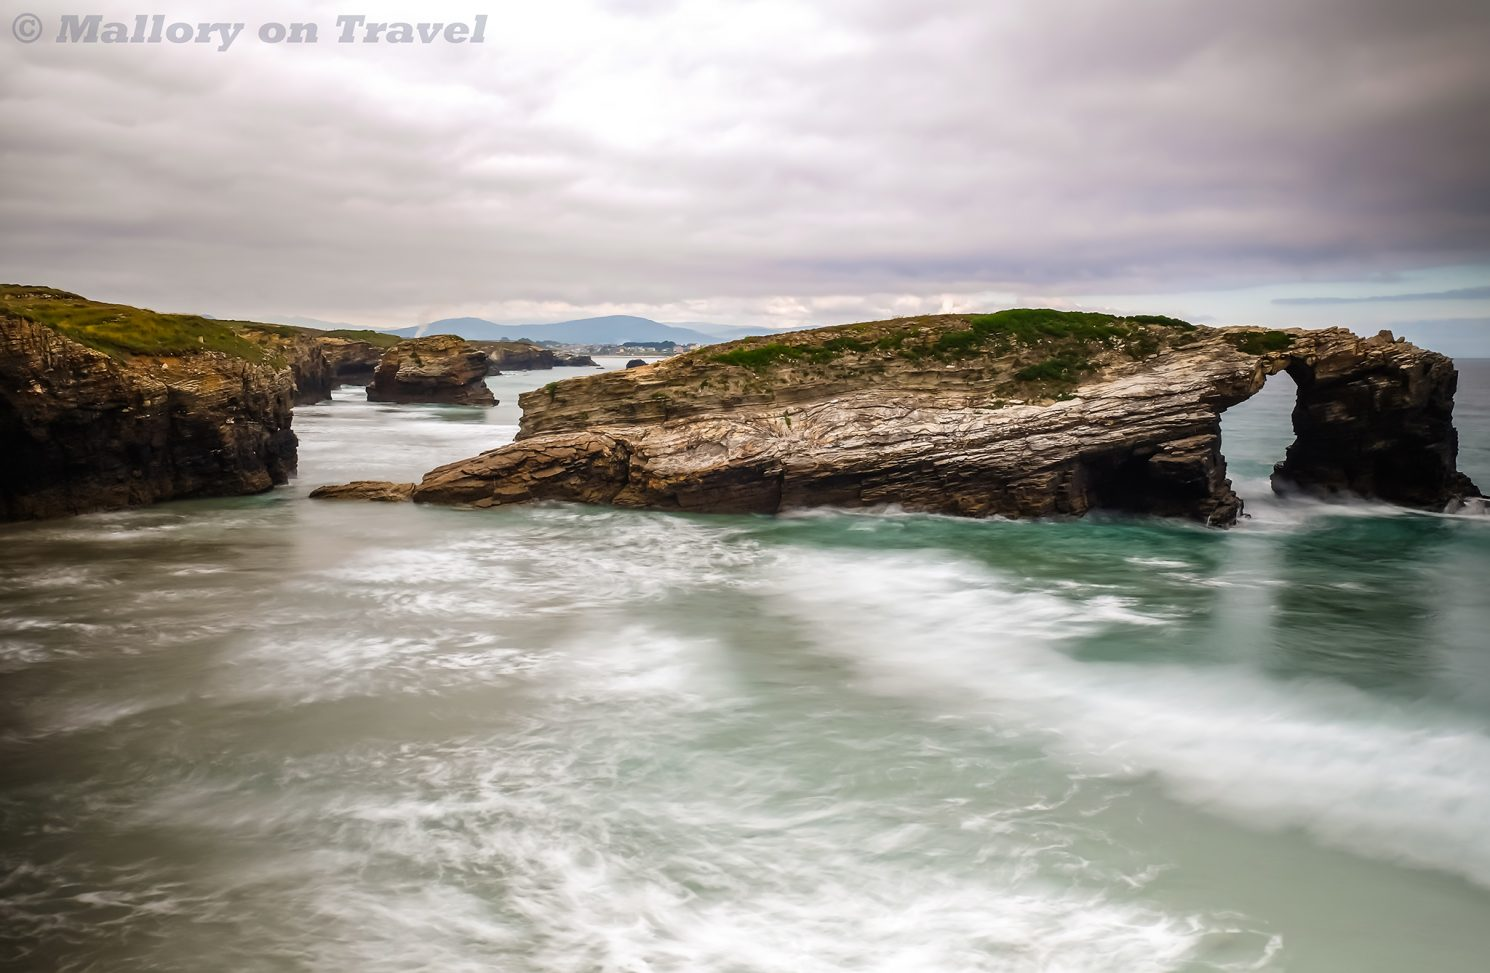 Beach of the Cathedrals, known as Beach of the Holy Waters in Galicia on the north west Atlantic coast of Spain on Mallory on Travel adventure travel, photography, travel Iain Mallory_Galicia7684